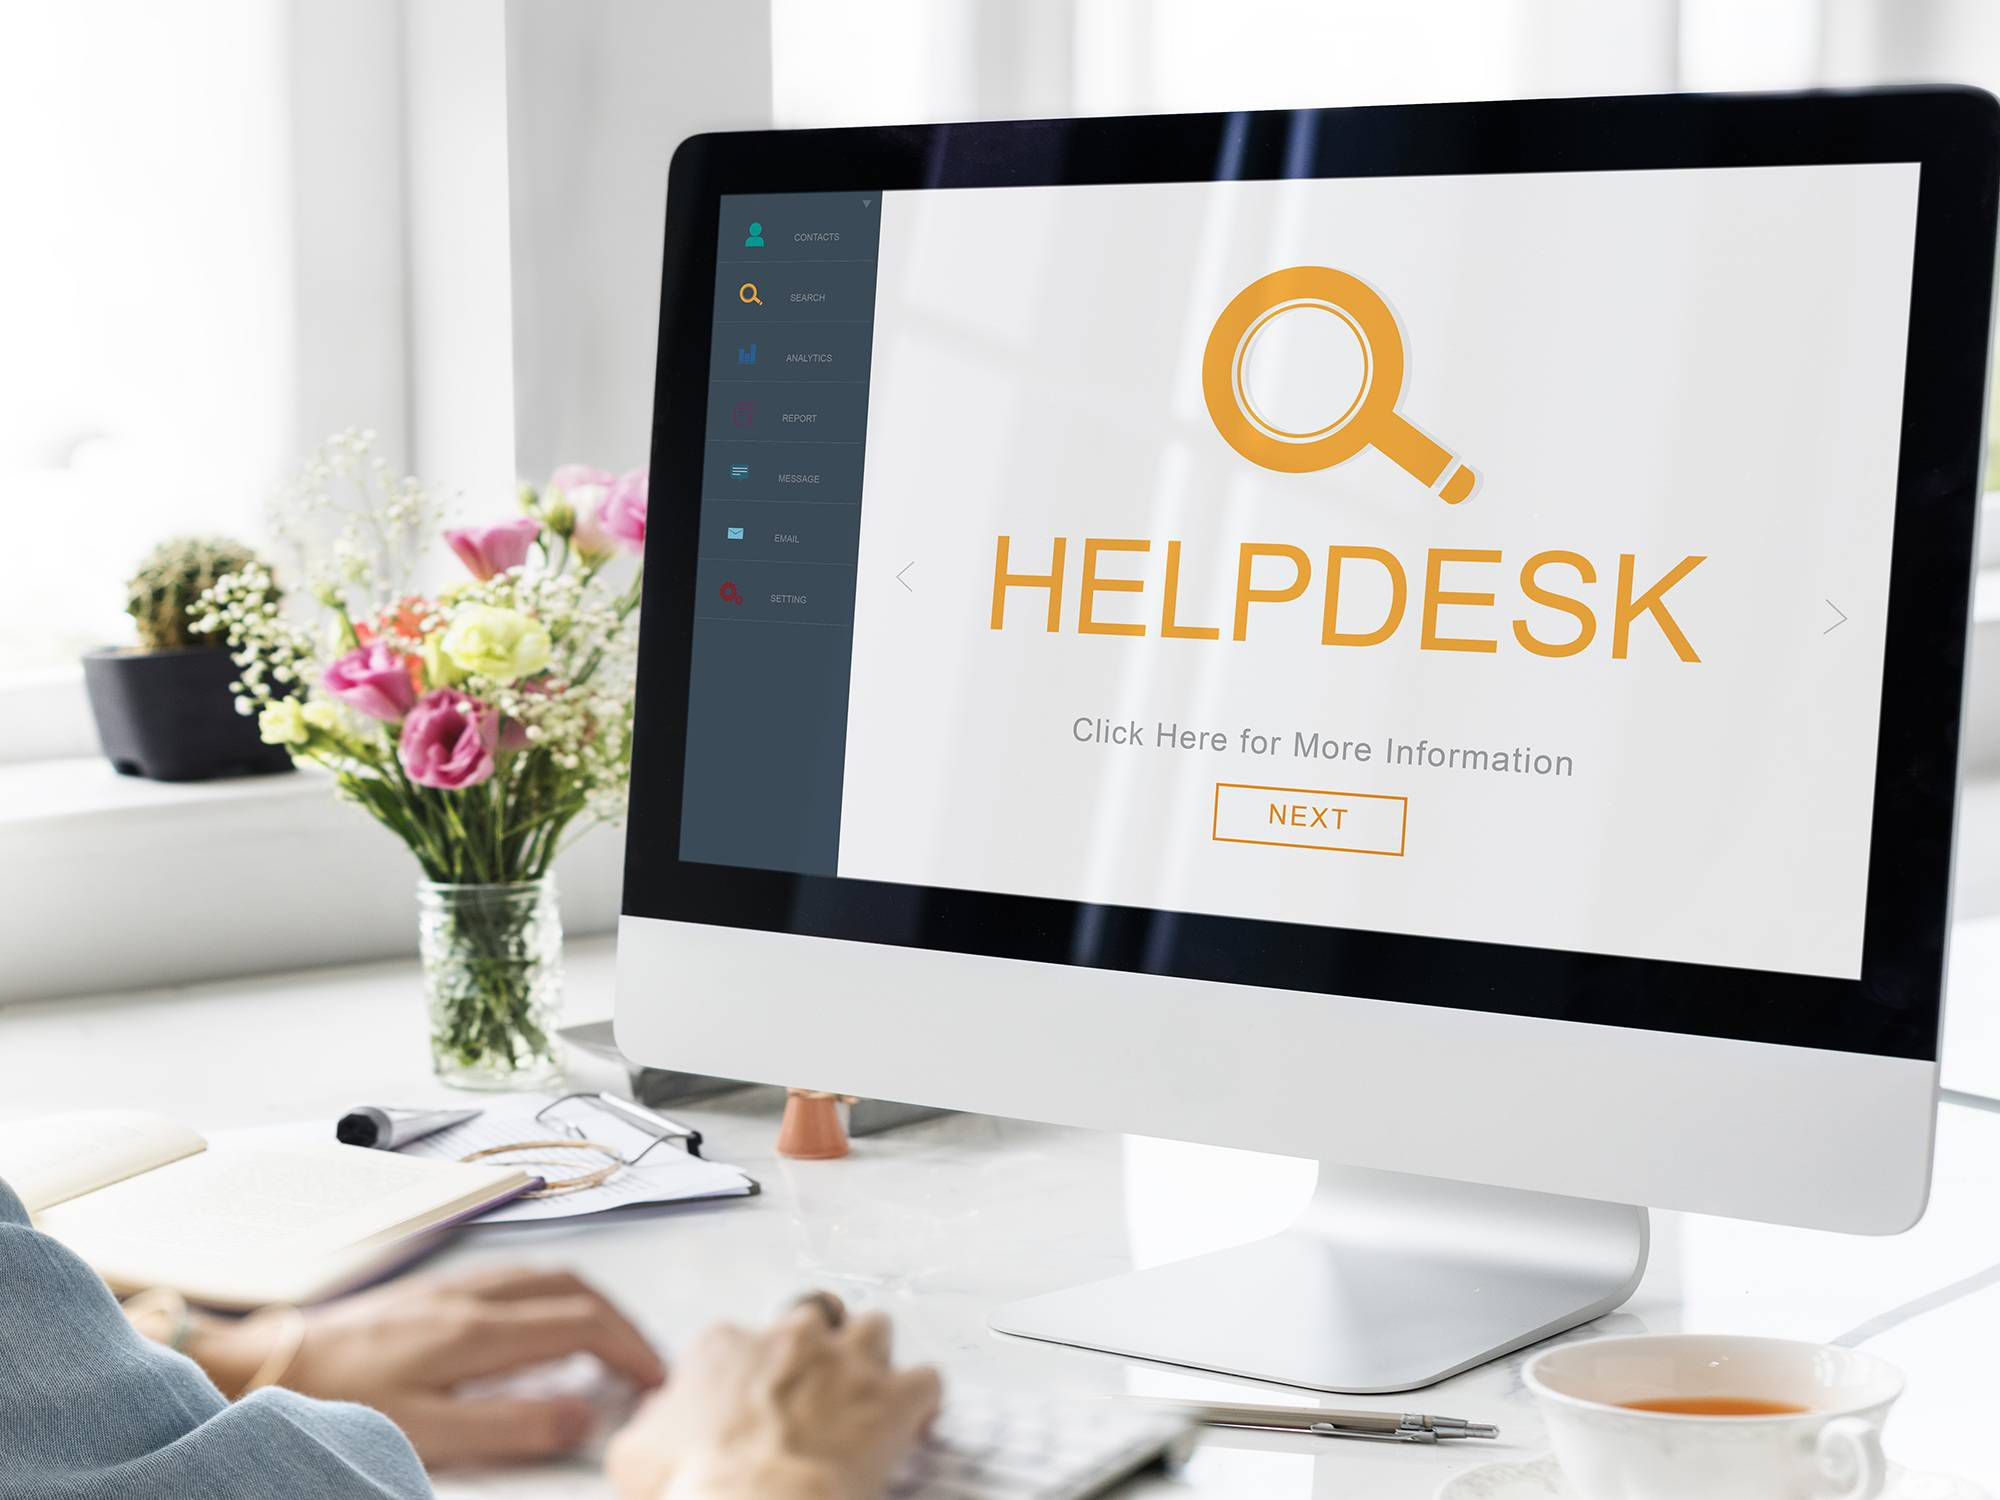 testo-helpdesk-lookup.jpg